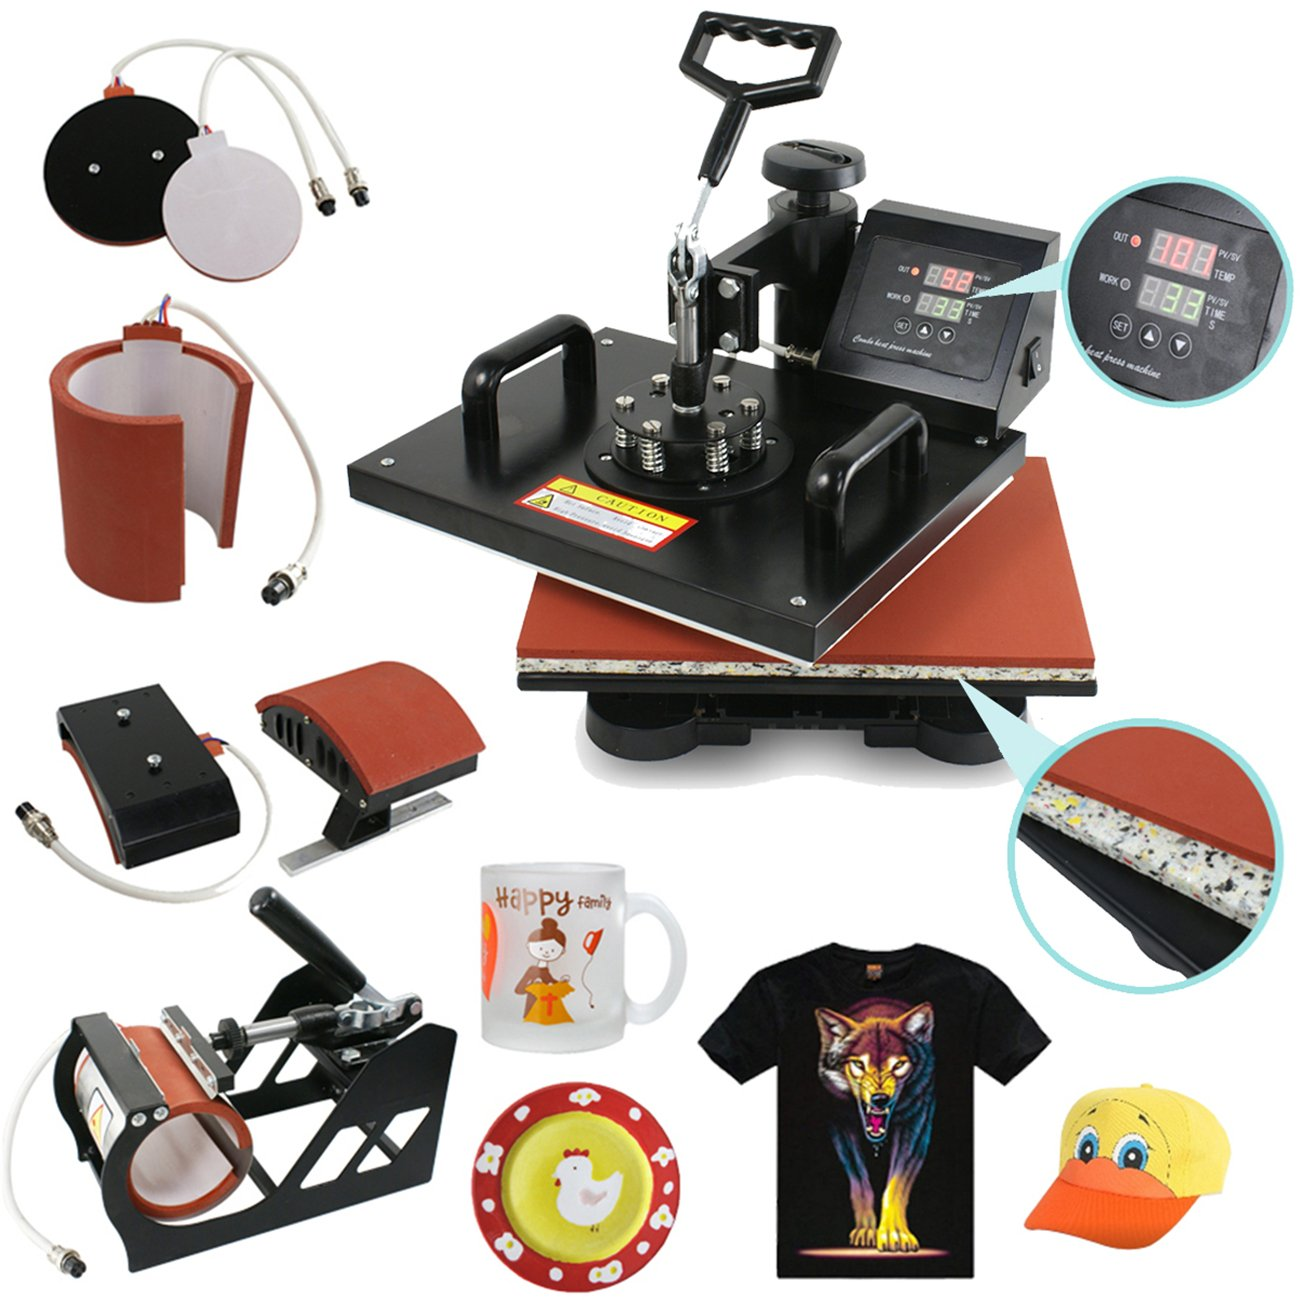 SegaweDigital Transfer Sublimation Heat Press Machine by Segawe